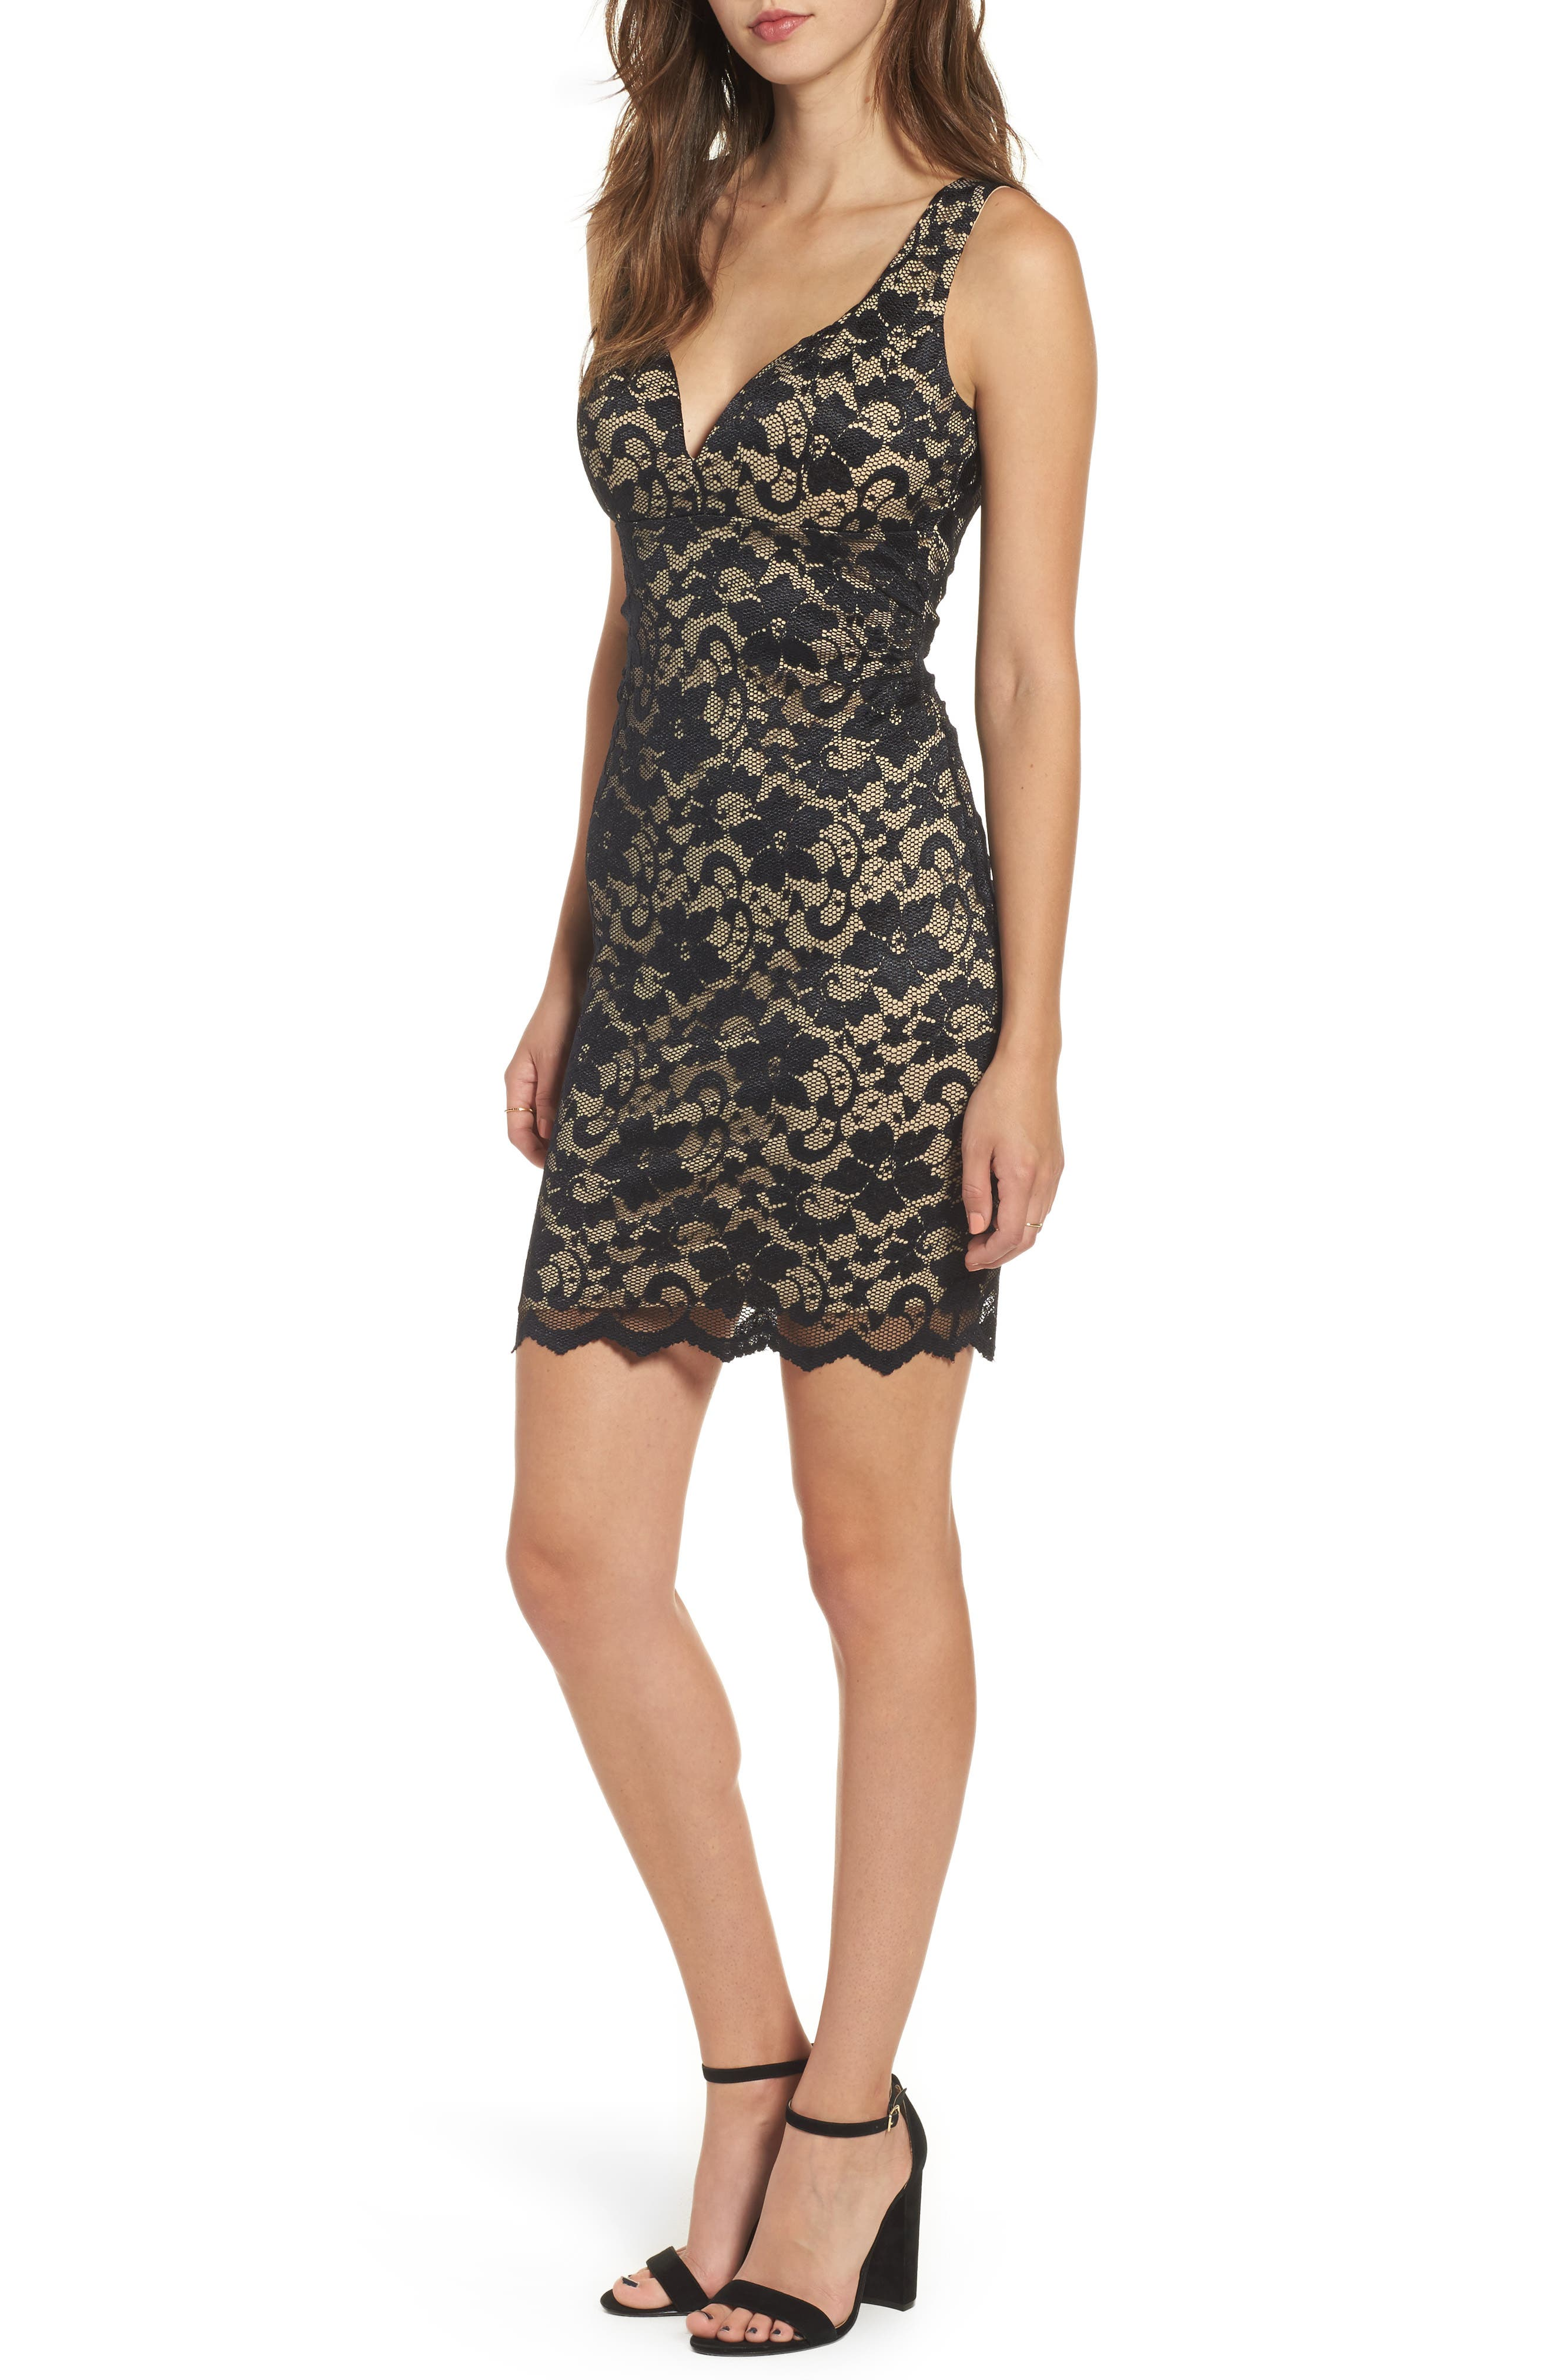 Love Nickie Lew Lace Body Con Dress,                             Main thumbnail 1, color,                             002